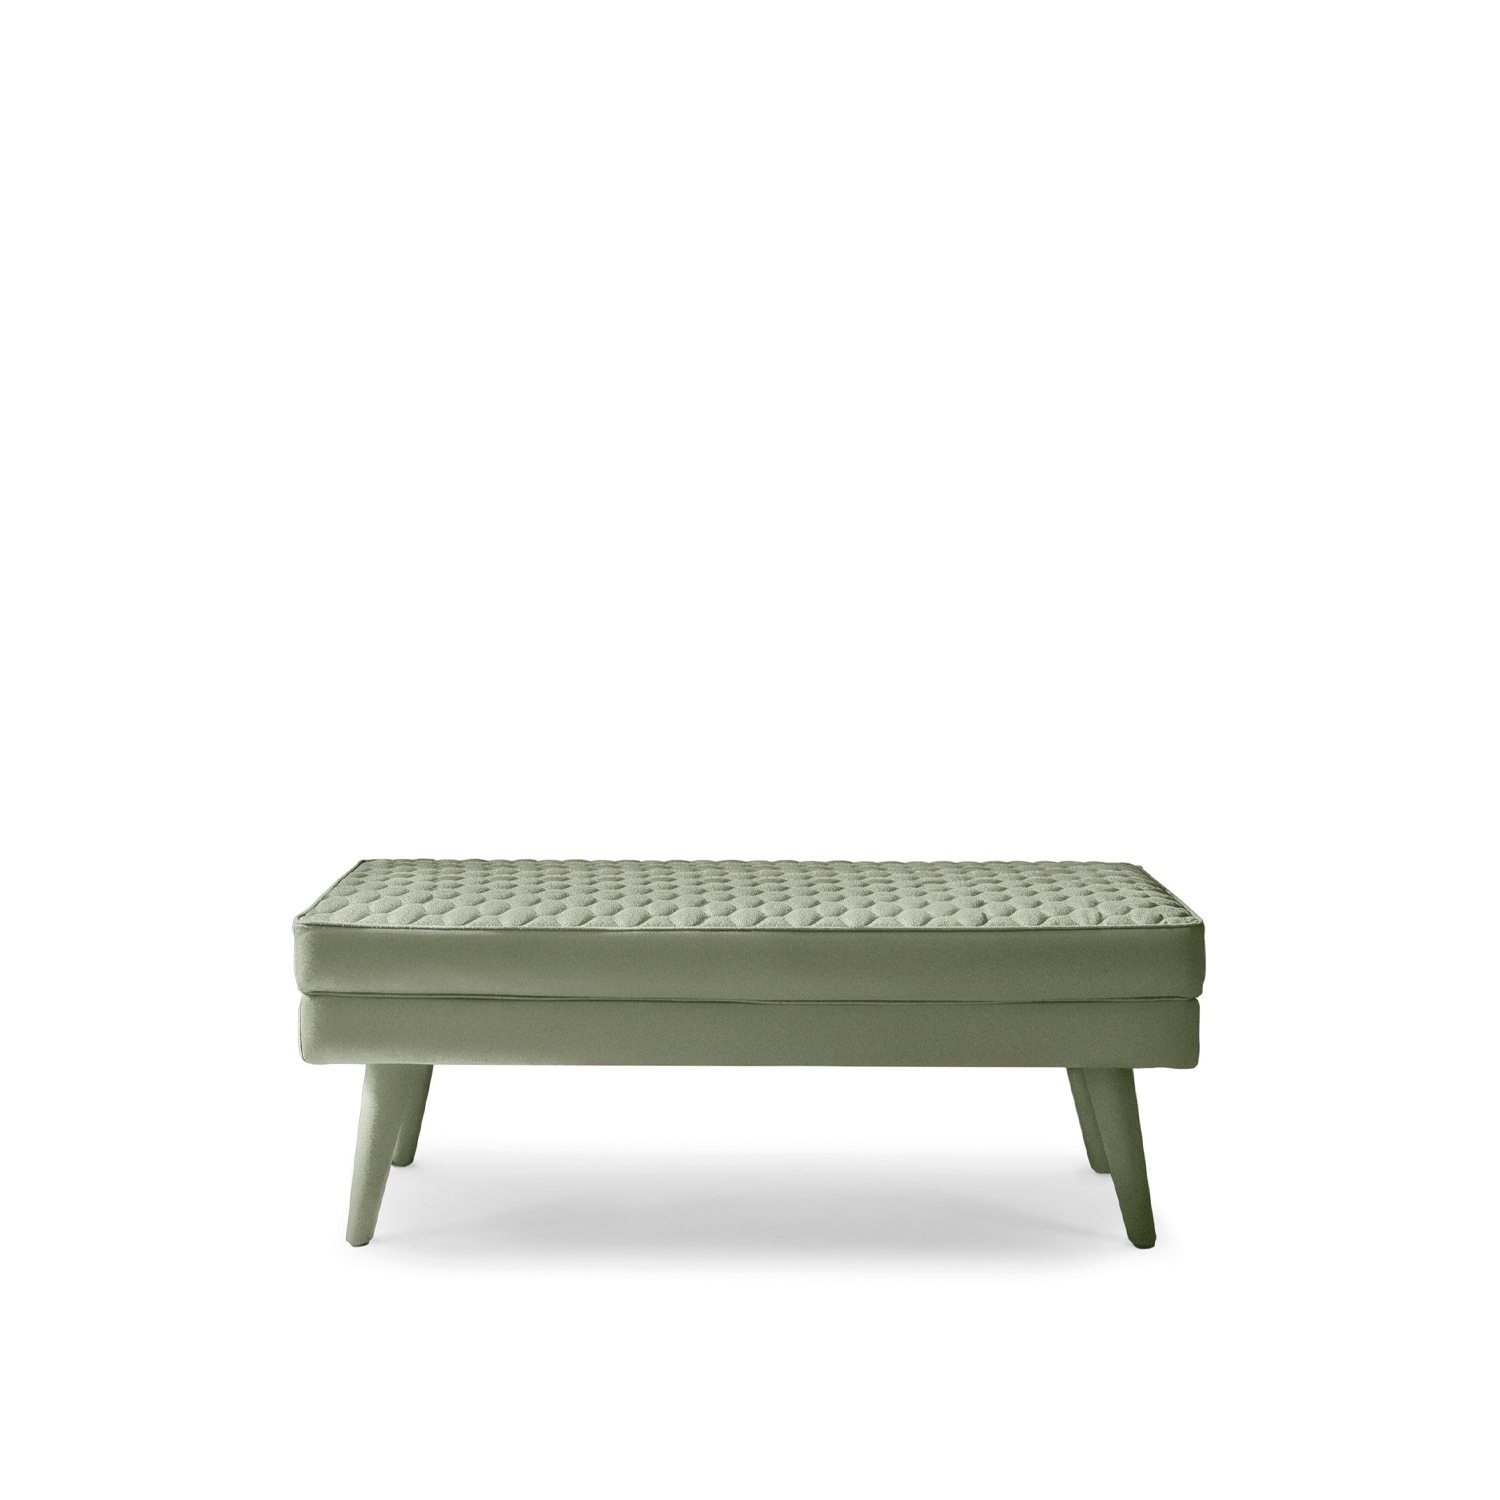 Corolle Bench - This bench recalls the style of Corolle bed by the design of its stitching and completes the collection together with the poufs.‎ | Matter of Stuff